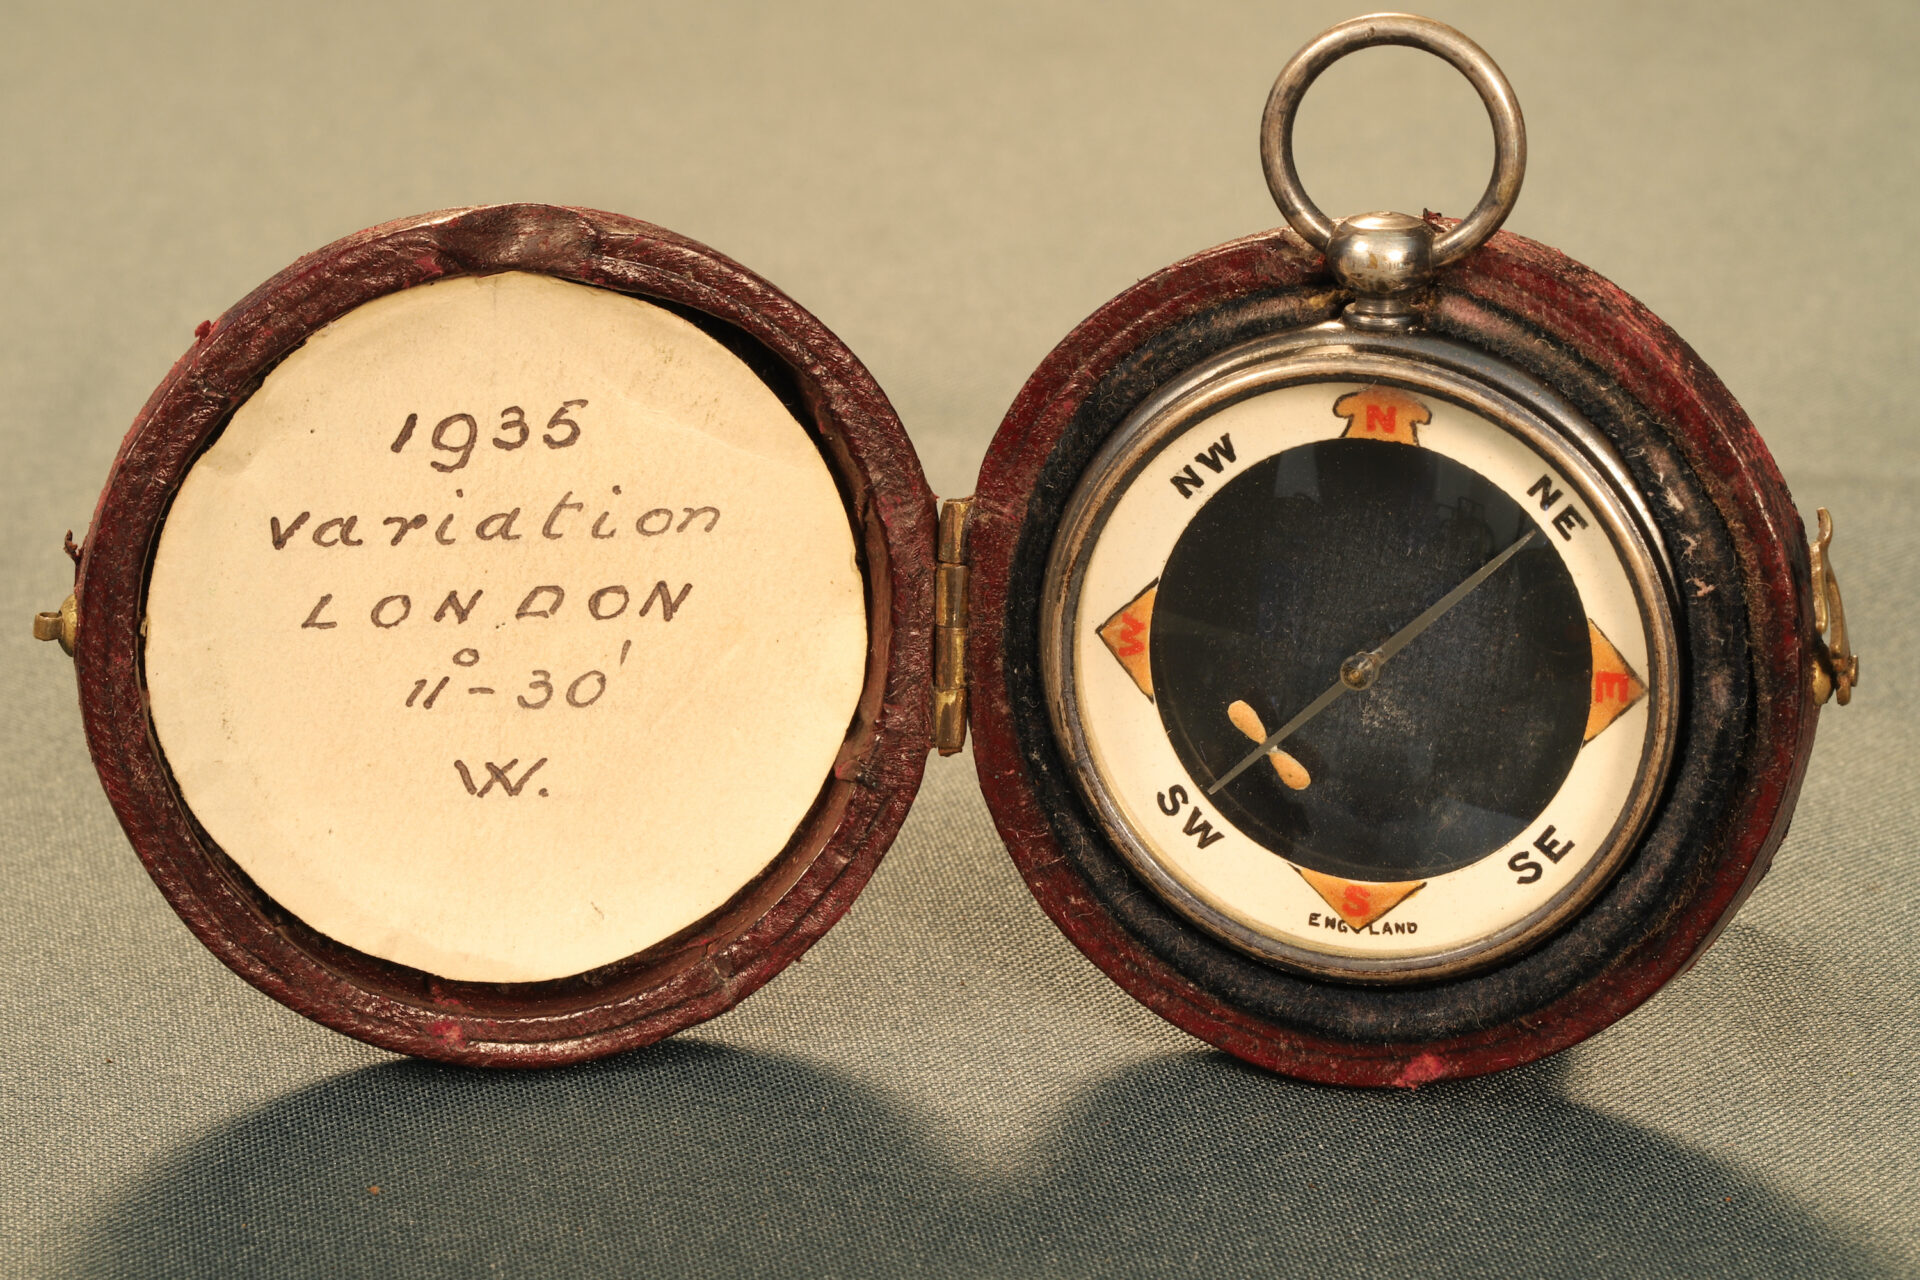 Image of front of Barker Radiant Transparent Pebble Lens Compass c1910 in travel case